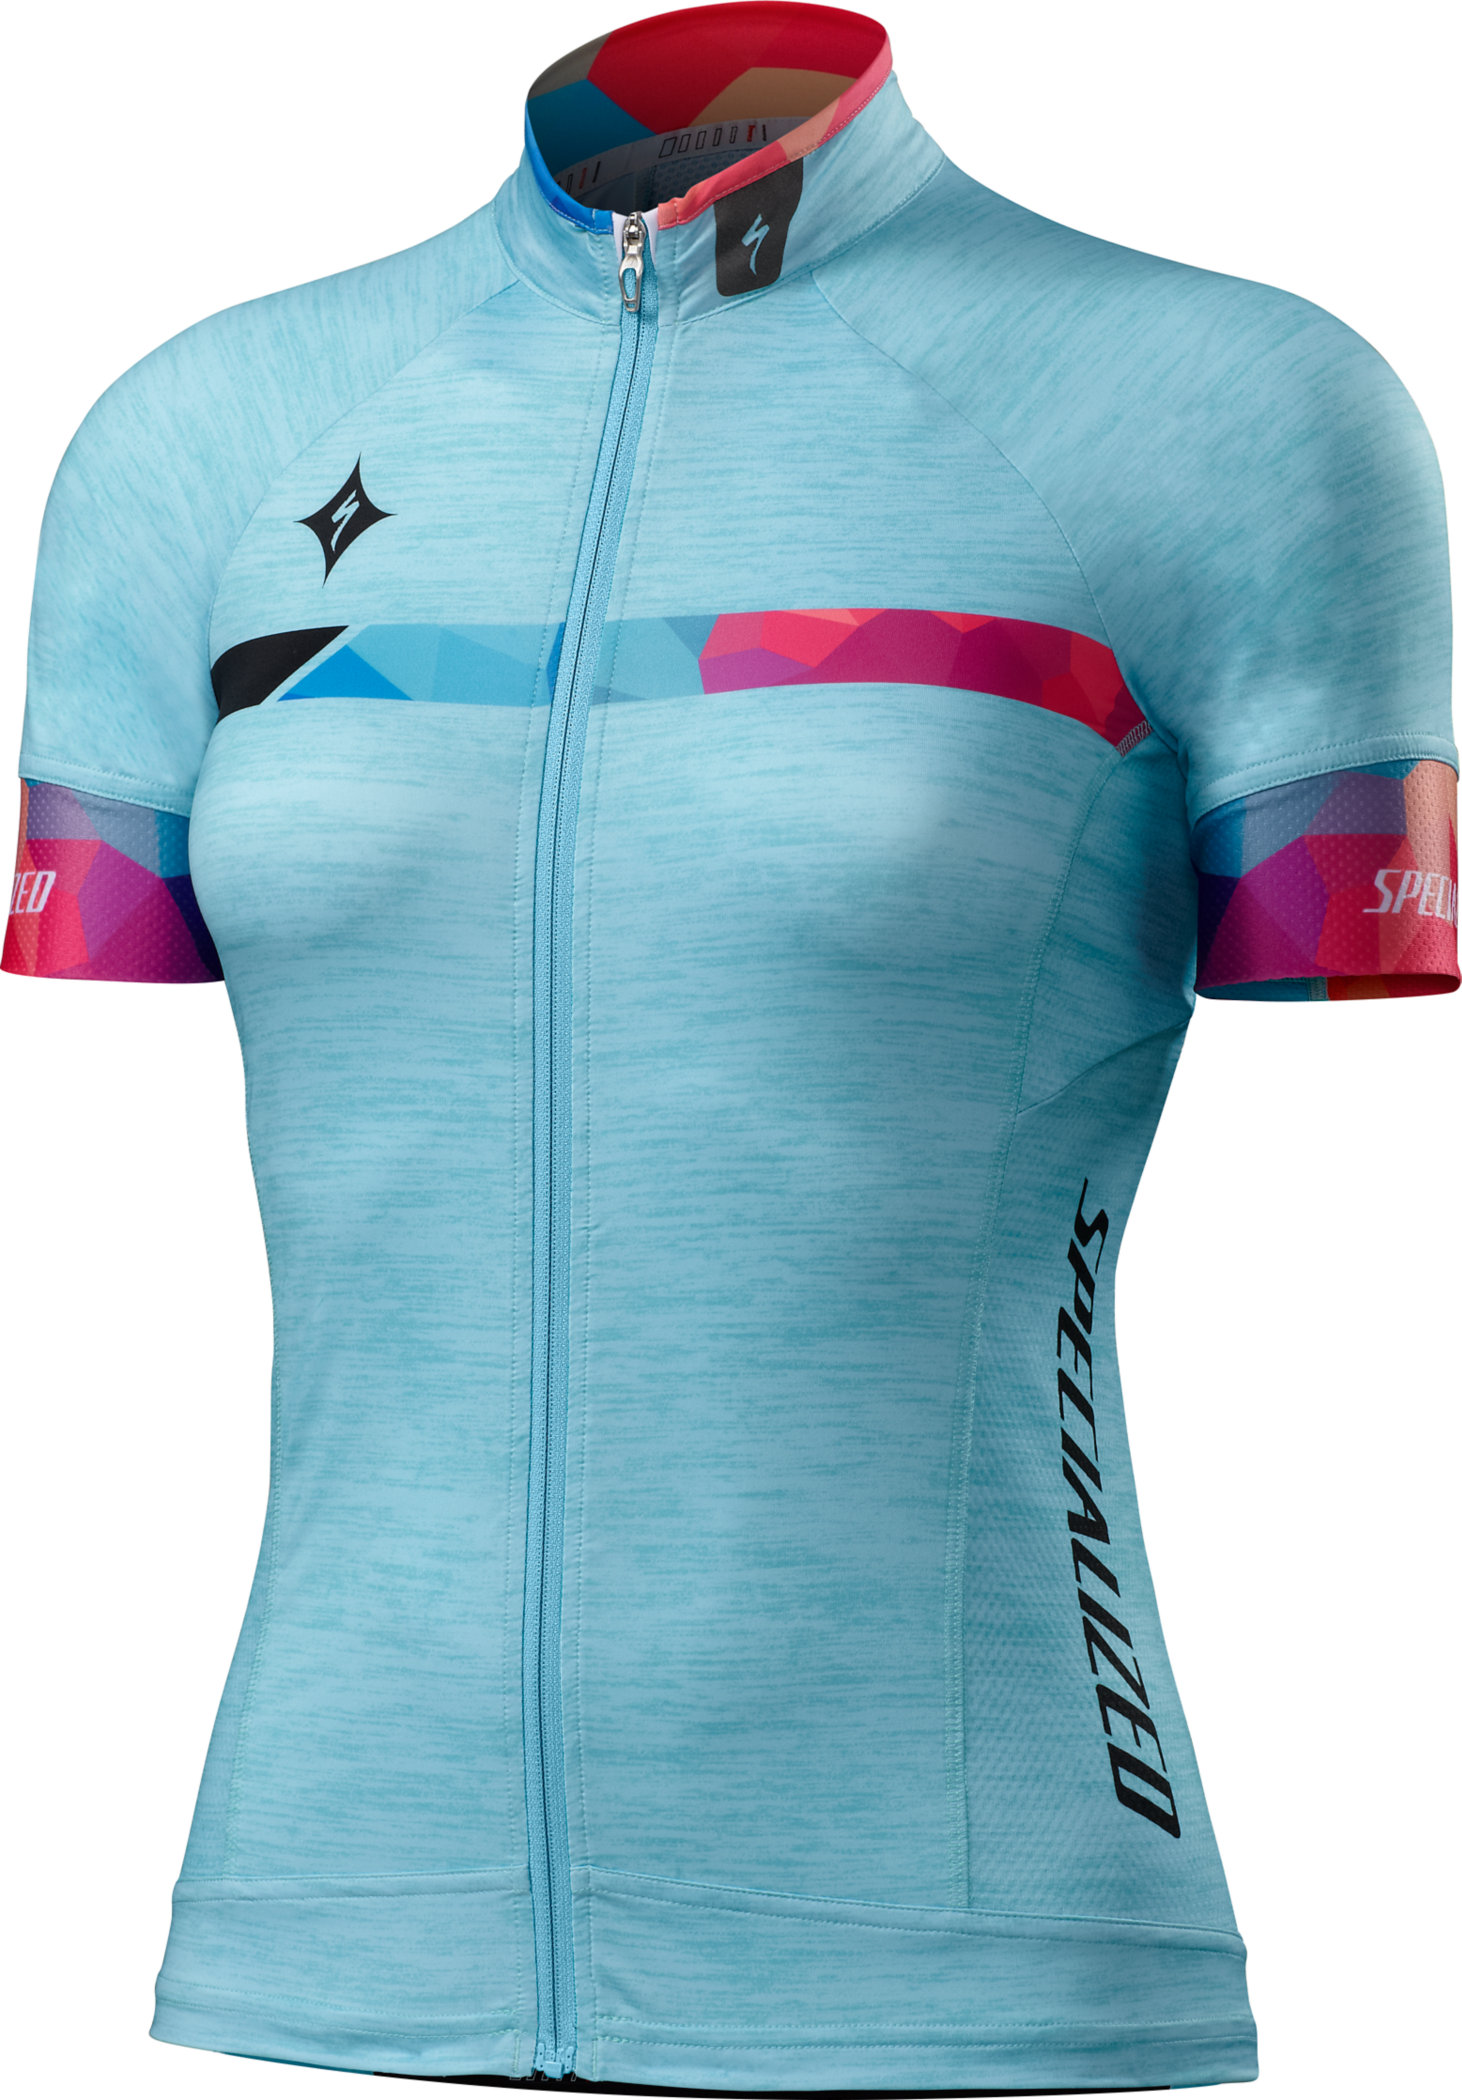 Specialized WOMEN´S SL PRO JERSEY  Turquoise/Geo Fade Large - Alpha Bikes